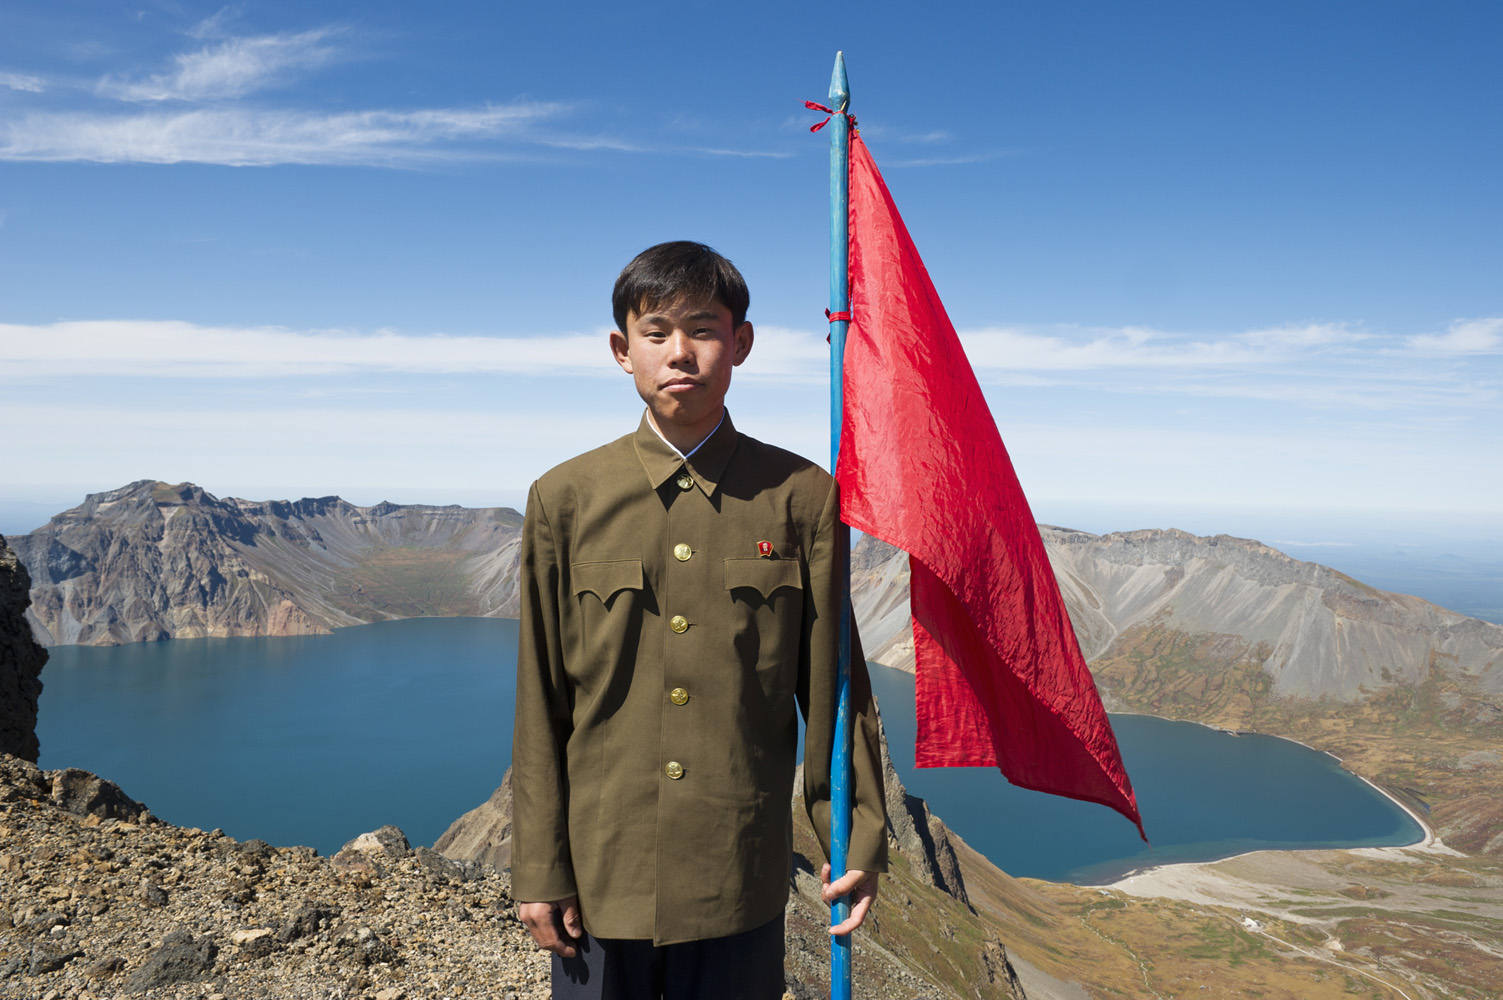 North Korean student holding a red flag on top of the volcanic mountain Baekdu (2744 m above sea level), the highest mountain in North Korea, with Chon Crater Lake in the background.  Kim Jong-il's official biography states that he was born in a secret military camp on Baekdu Mountain. Dense forest around the mountain provided bases for Korean armed resistance against the Japanese occupation, and later communist guerrillas during the Korean War. The Baekdu Mountain has been worshipped by the surrounding peoples throughout history. Both the Koreans and Manchus consider it the place of their ancestral origin.